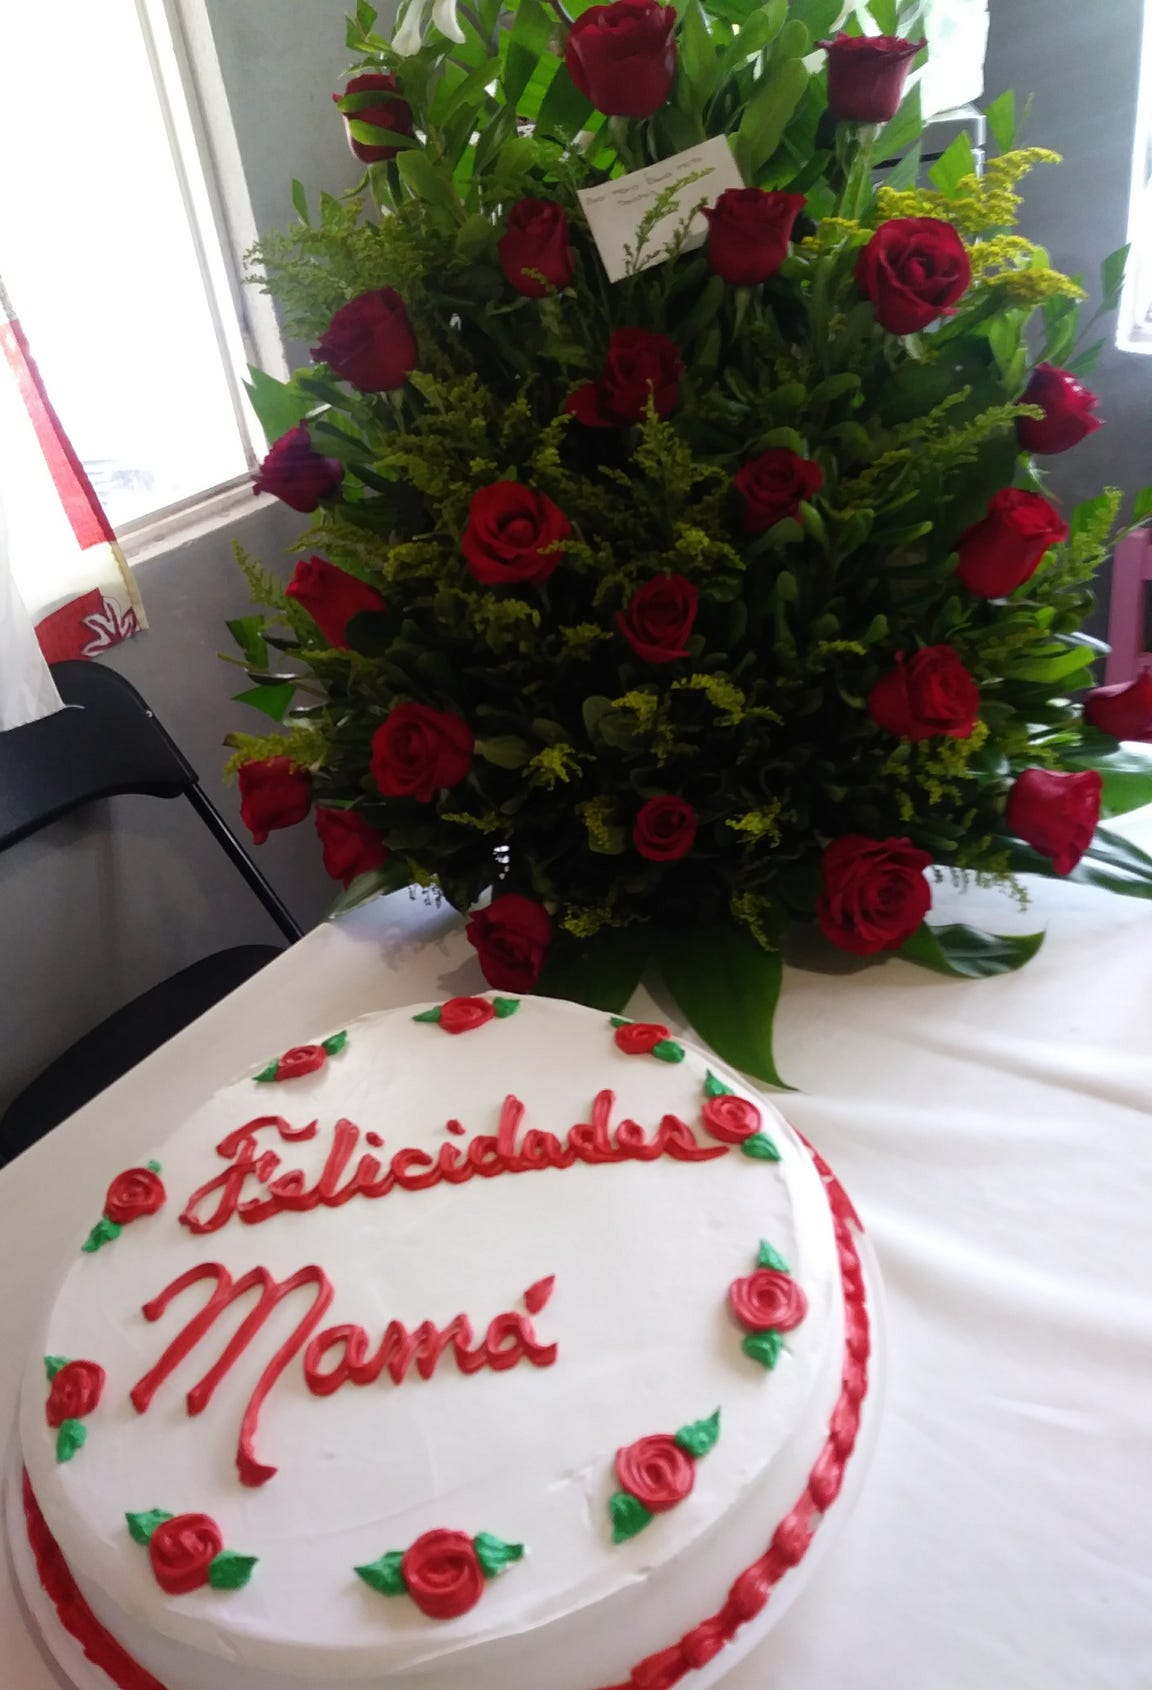 The birthday cake for María Elena Maya Sánchez.